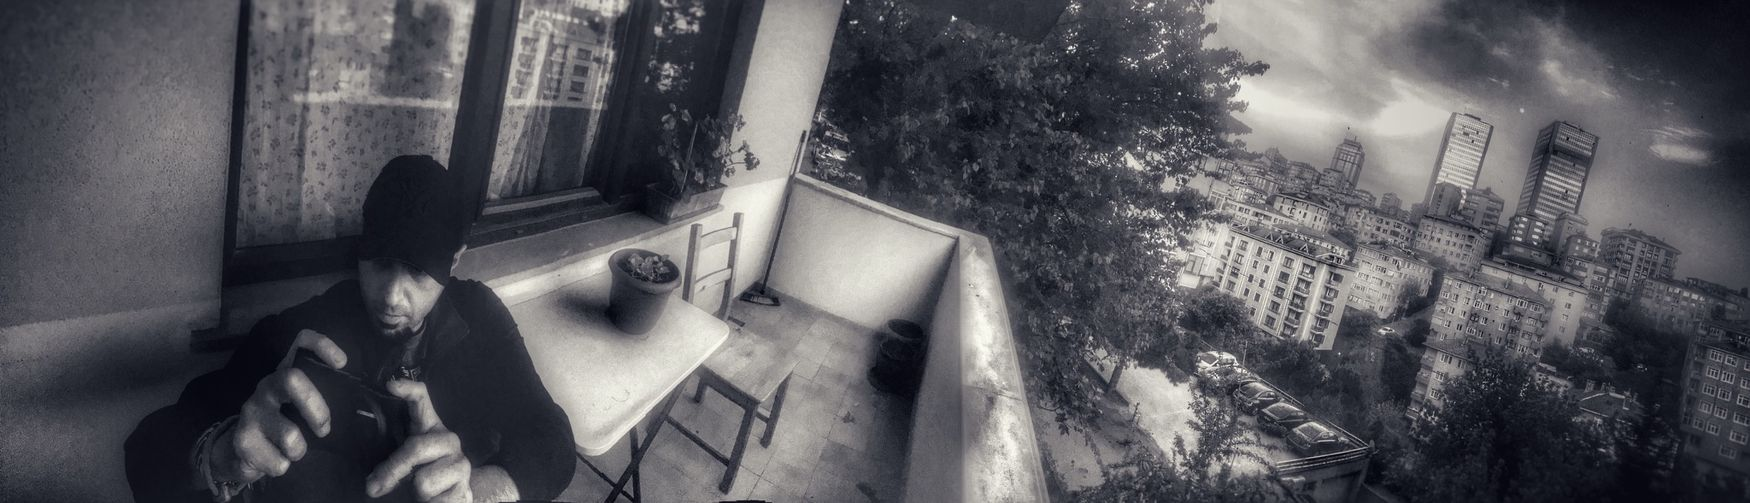 Istanbul Mate At The Friends House Hdrlook Blackandwhite Blackandwhite Photography Panoramic Black And White Friday